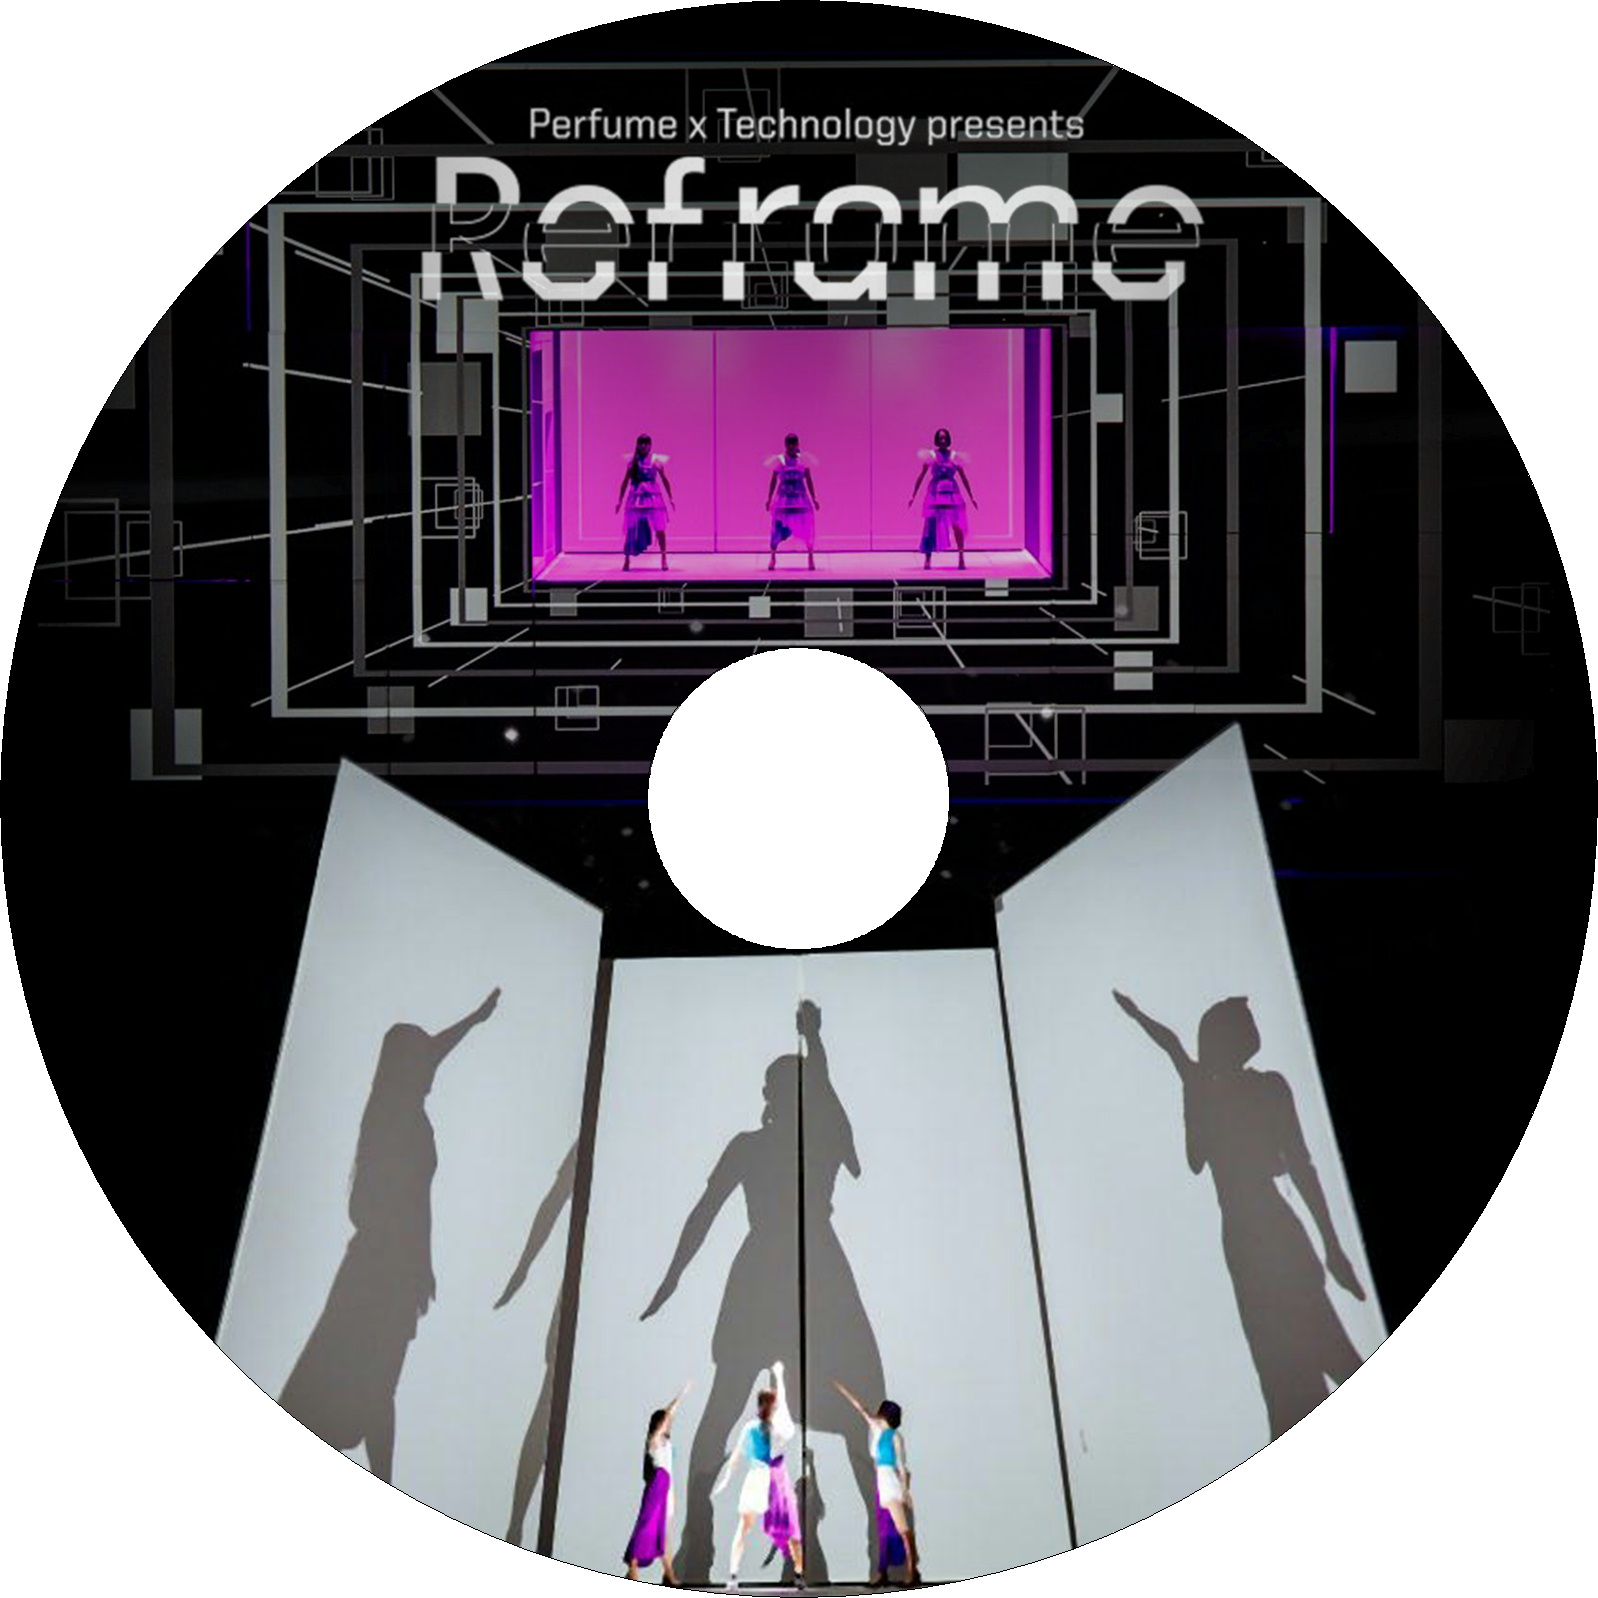 "「Perfume×TECHNOLOGY」presents""Reframe"" ラベル"